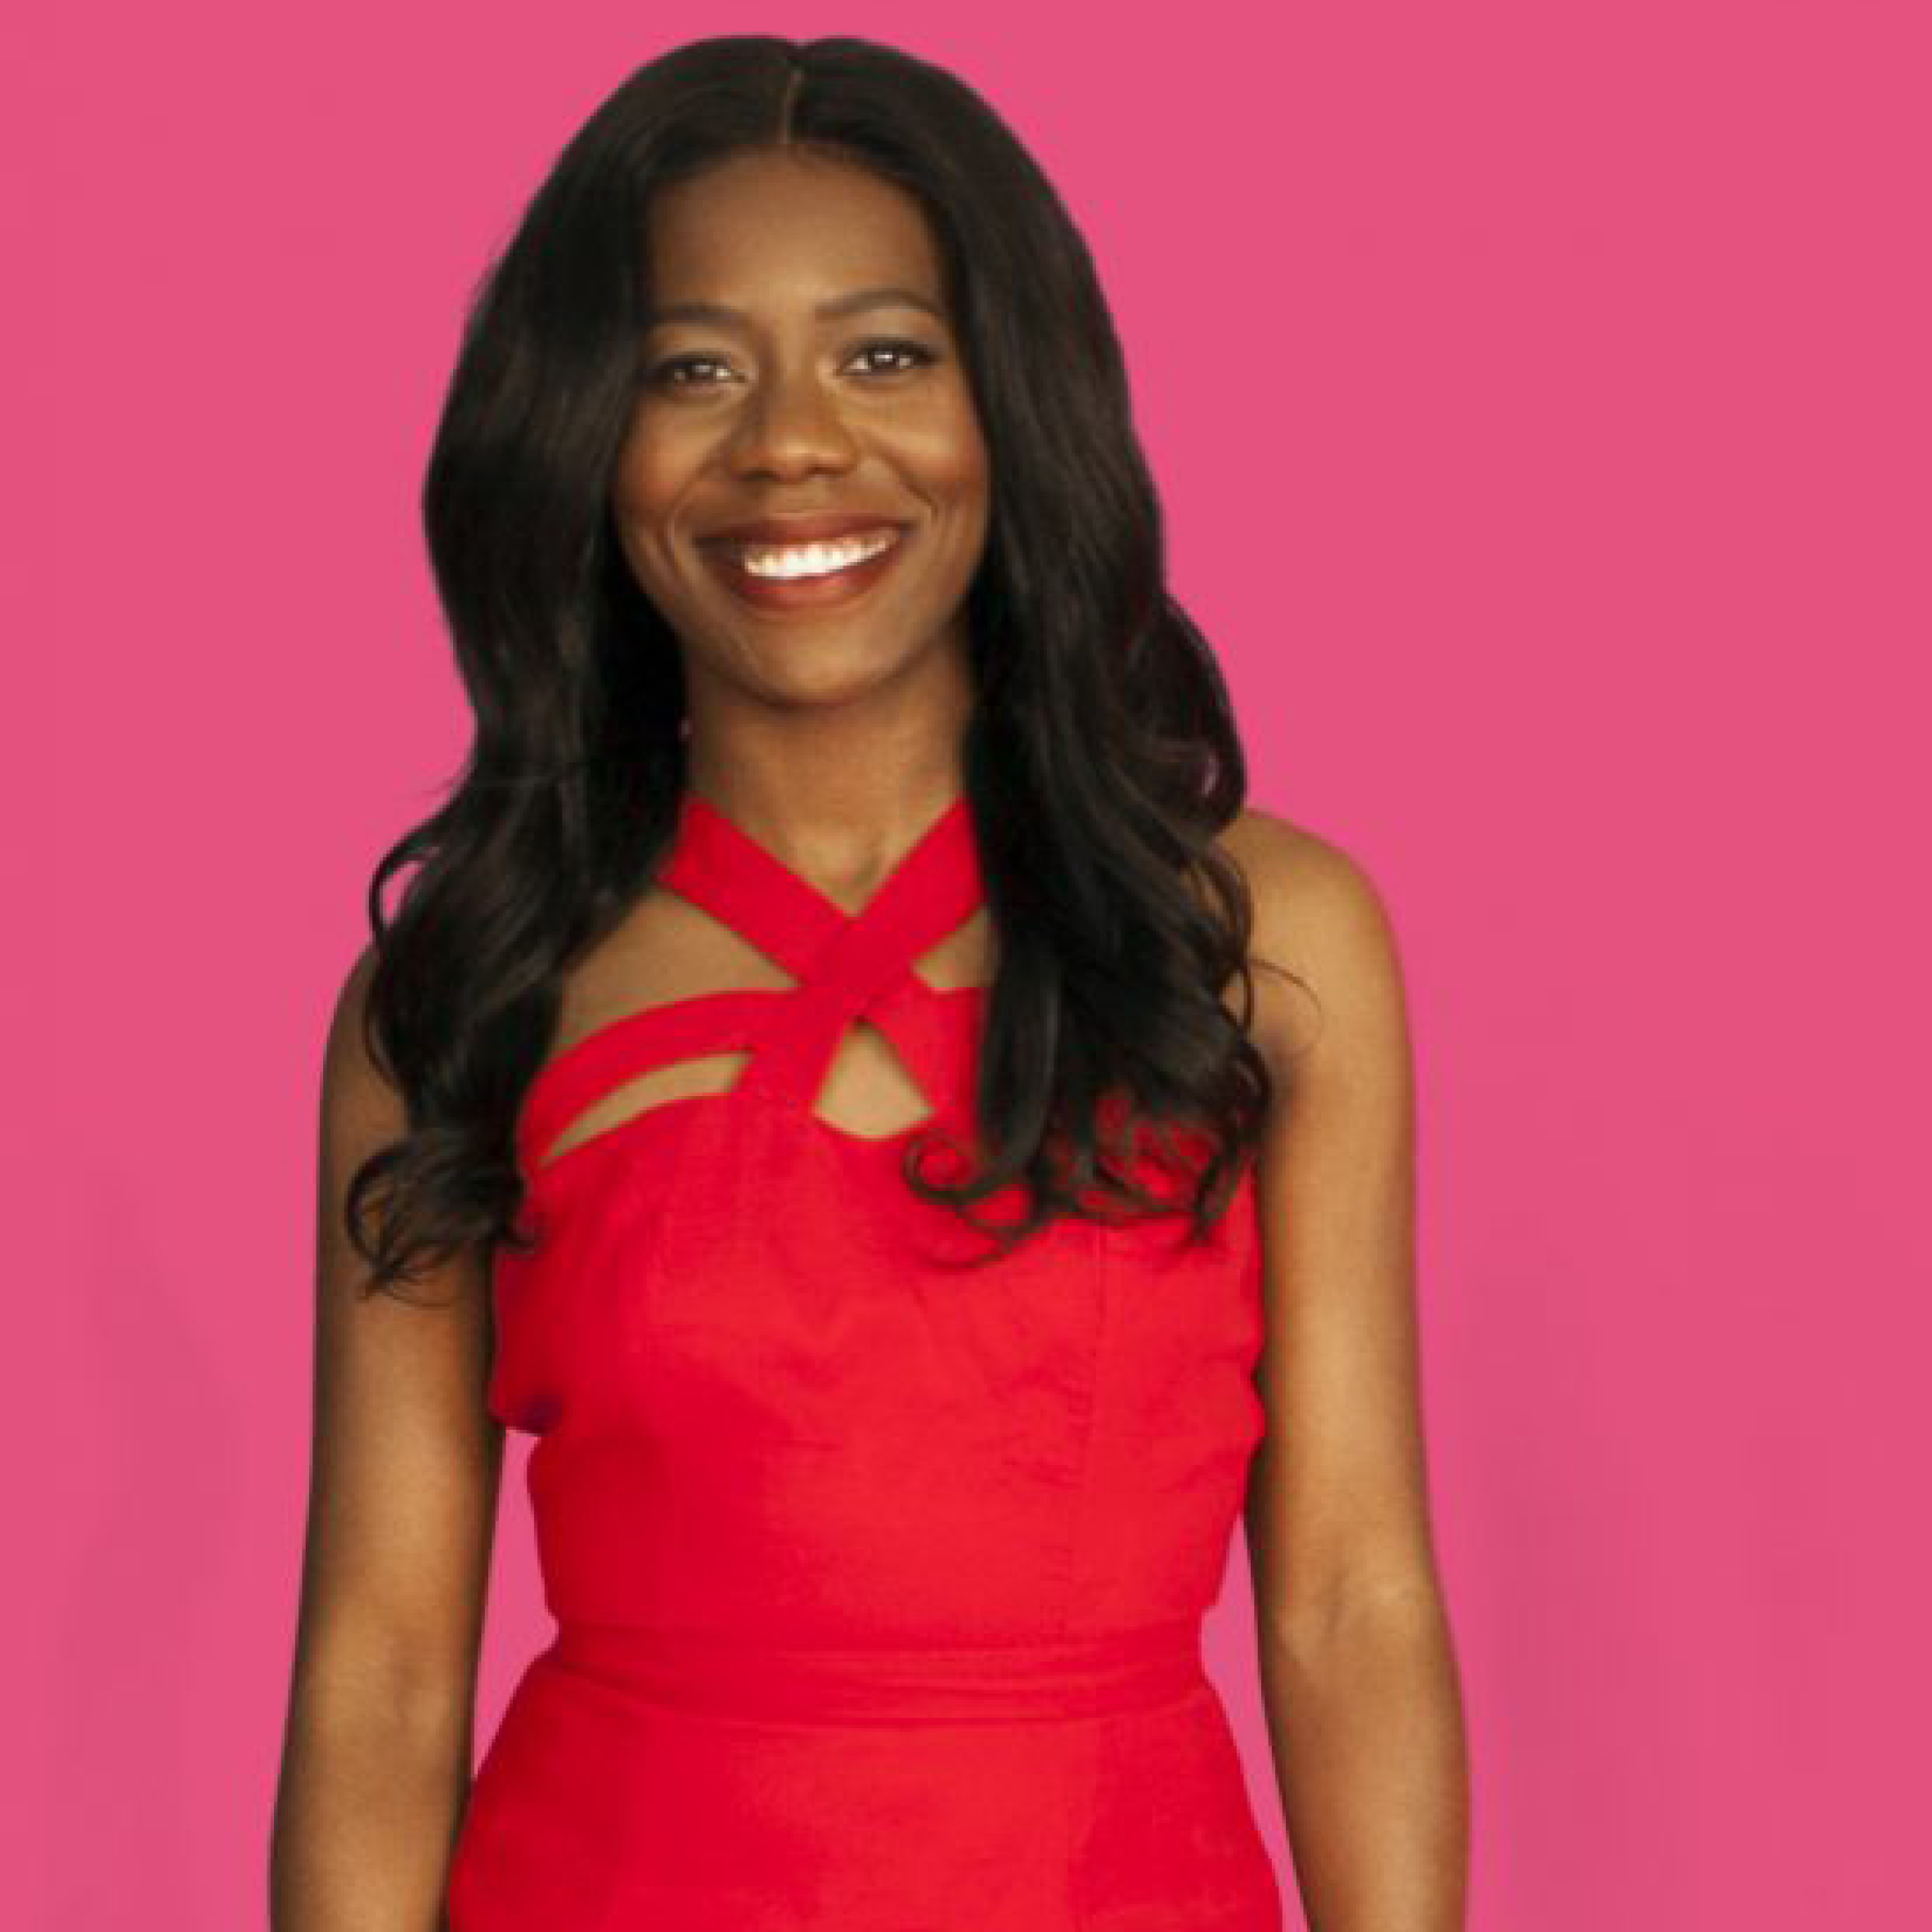 Elizabeth Uviebinené - Co-author of Slay in Your Lane, Elizabeth Uviebinené is also a Brand Marketer from London, with a degree in Politics from Warwick University.